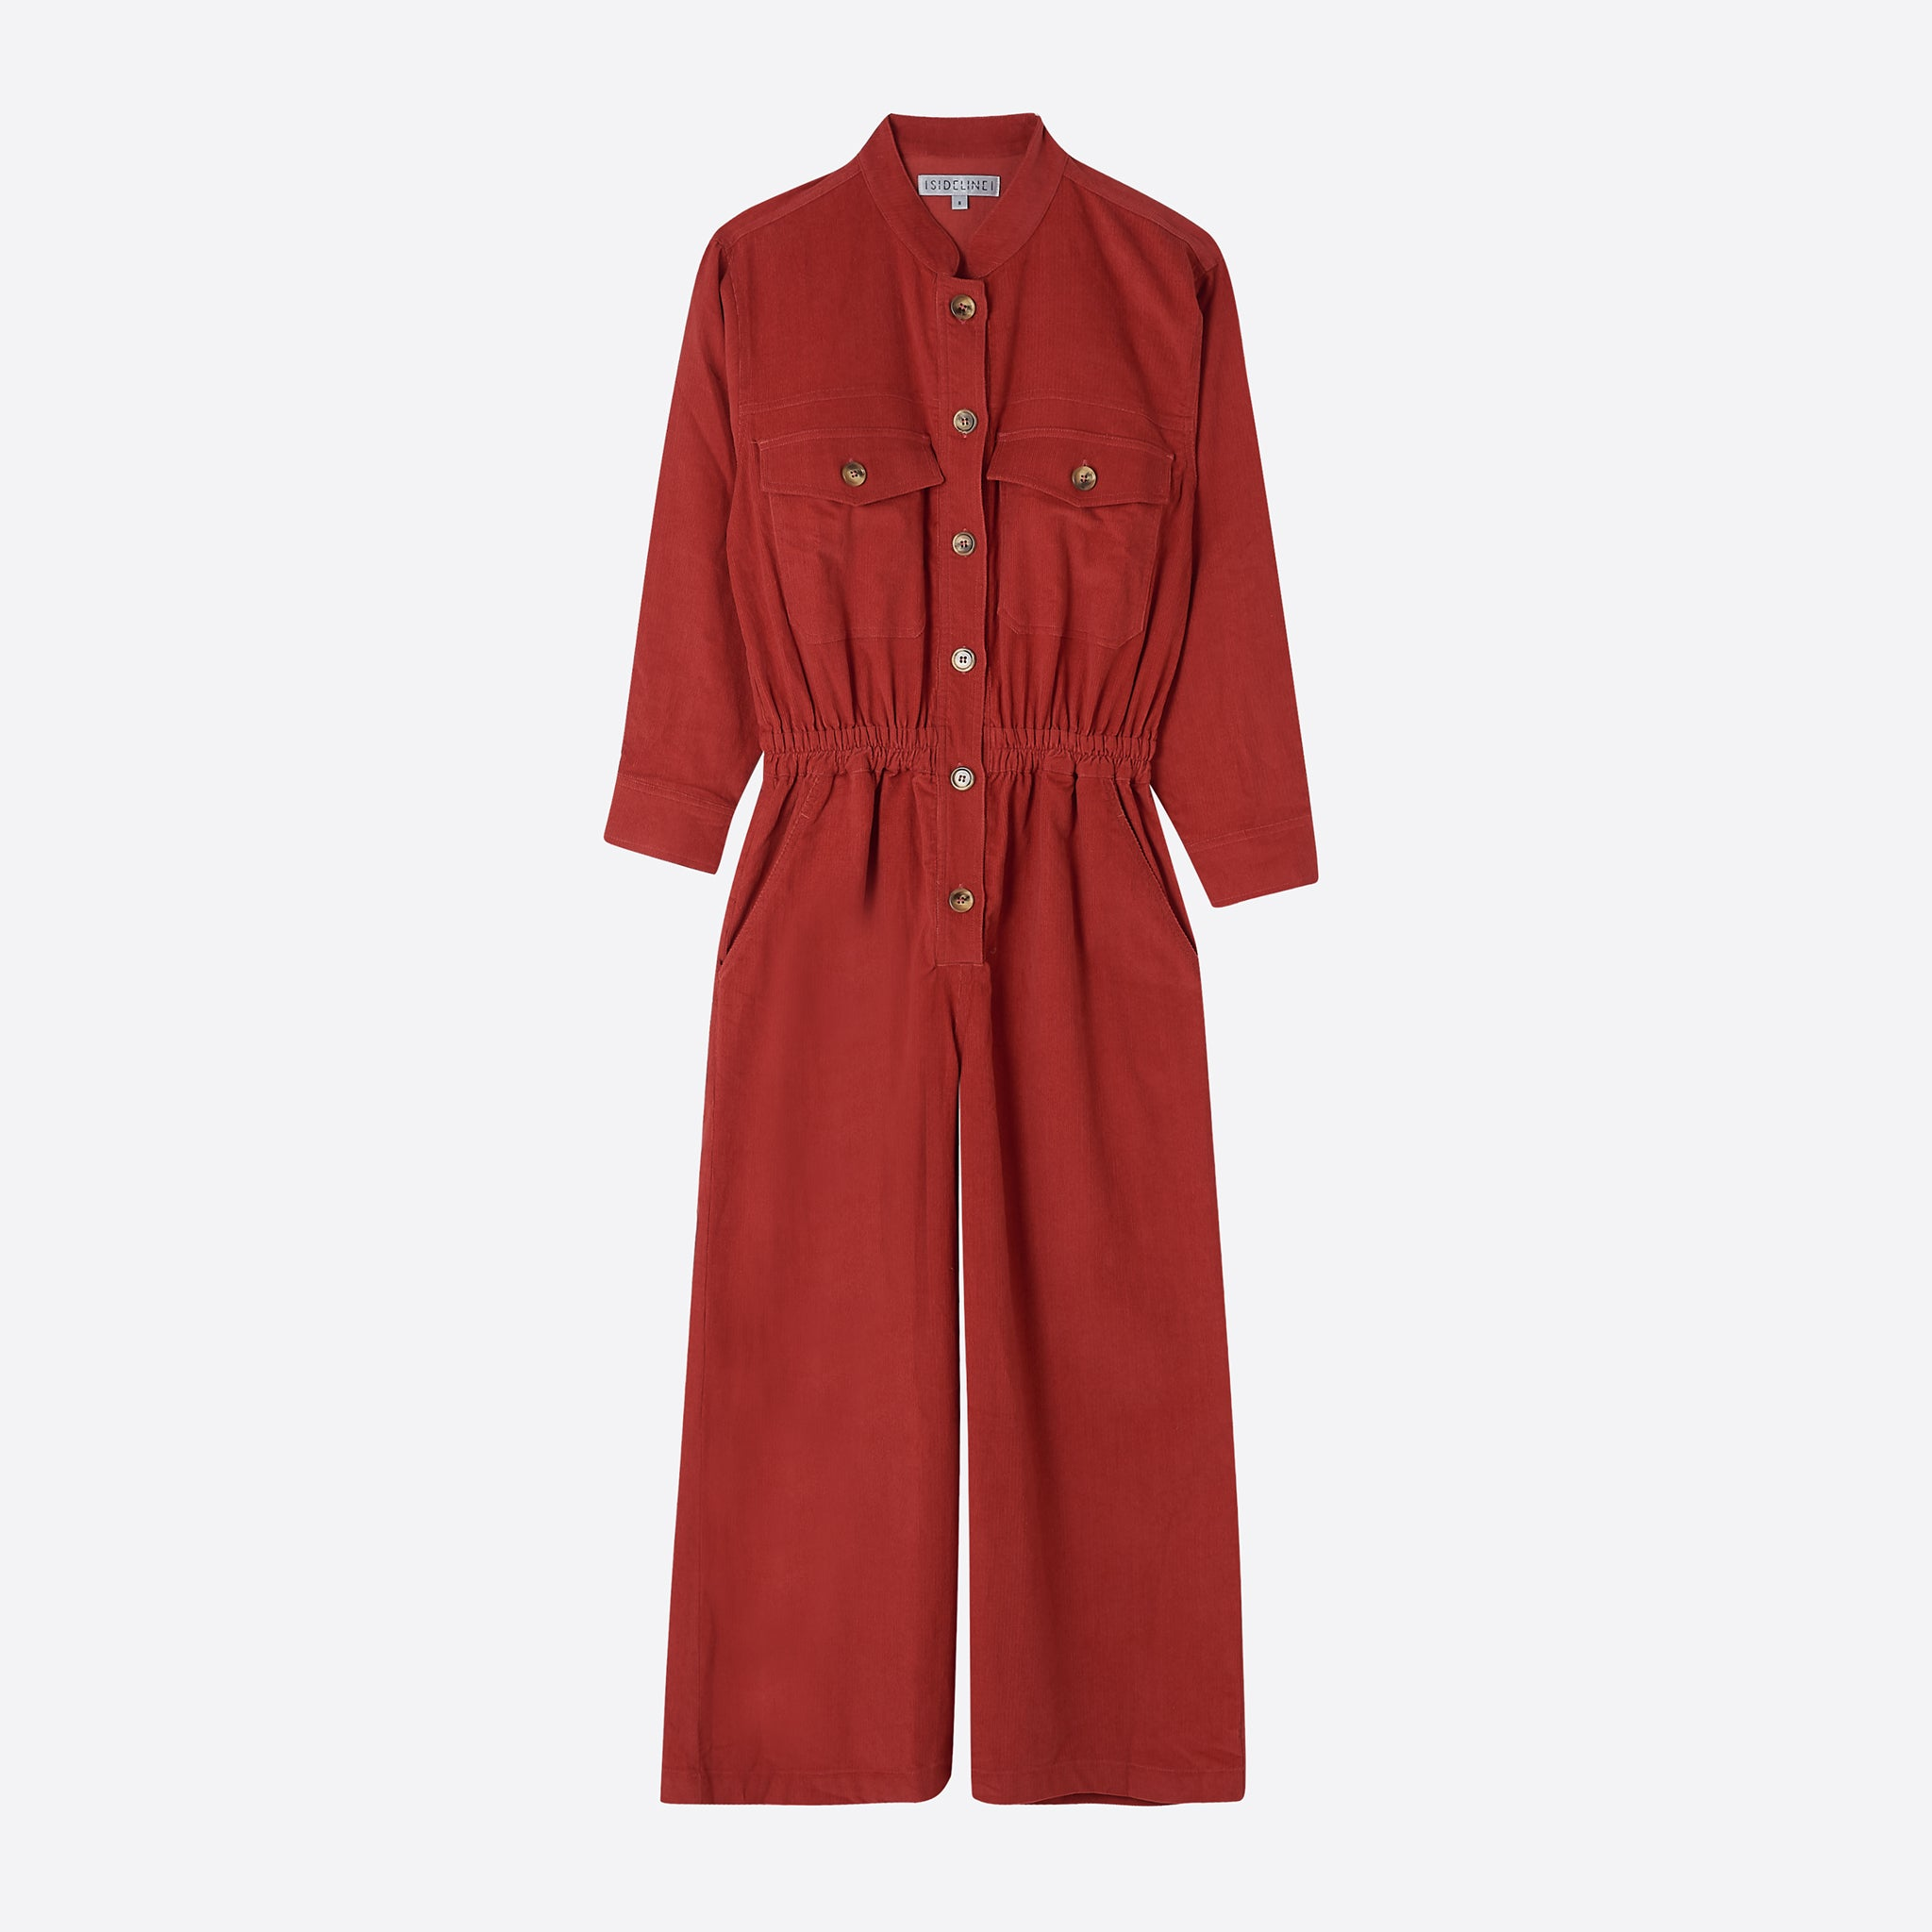 Sideline Frankie Jumpsuit in Red Cord